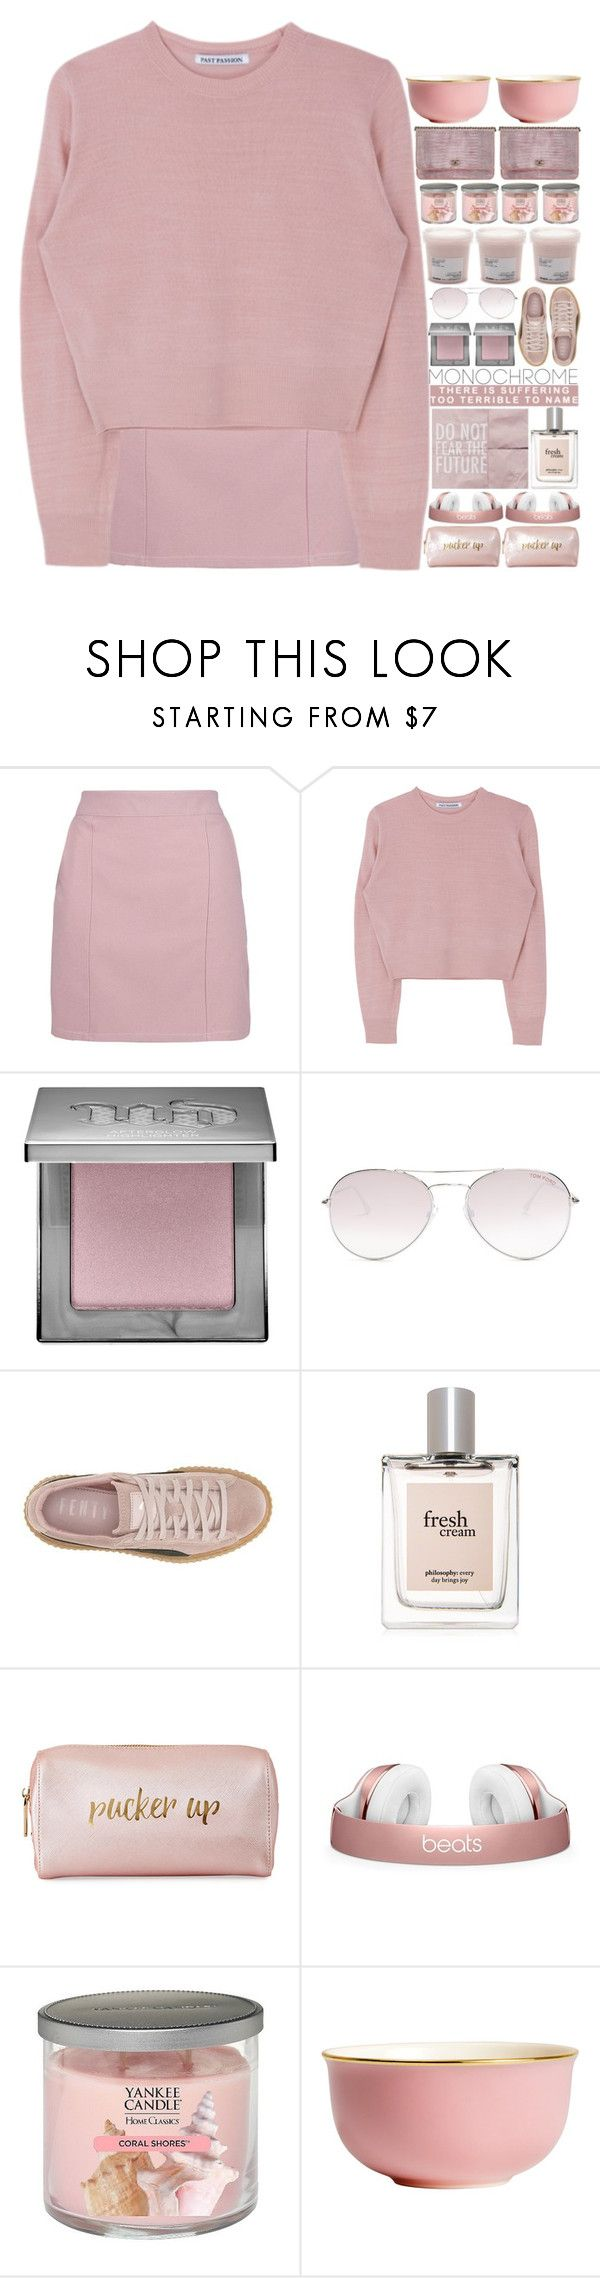 """""""Color Me Pretty: Head-to-Toe Pink"""" by tiffanyelinor ❤ liked on Polyvore featuring Boohoo, Urban Decay, Tom Ford, Puma, philosophy, Neiman Marcus, Yankee Candle, H&M, monochrome and monochromepink"""